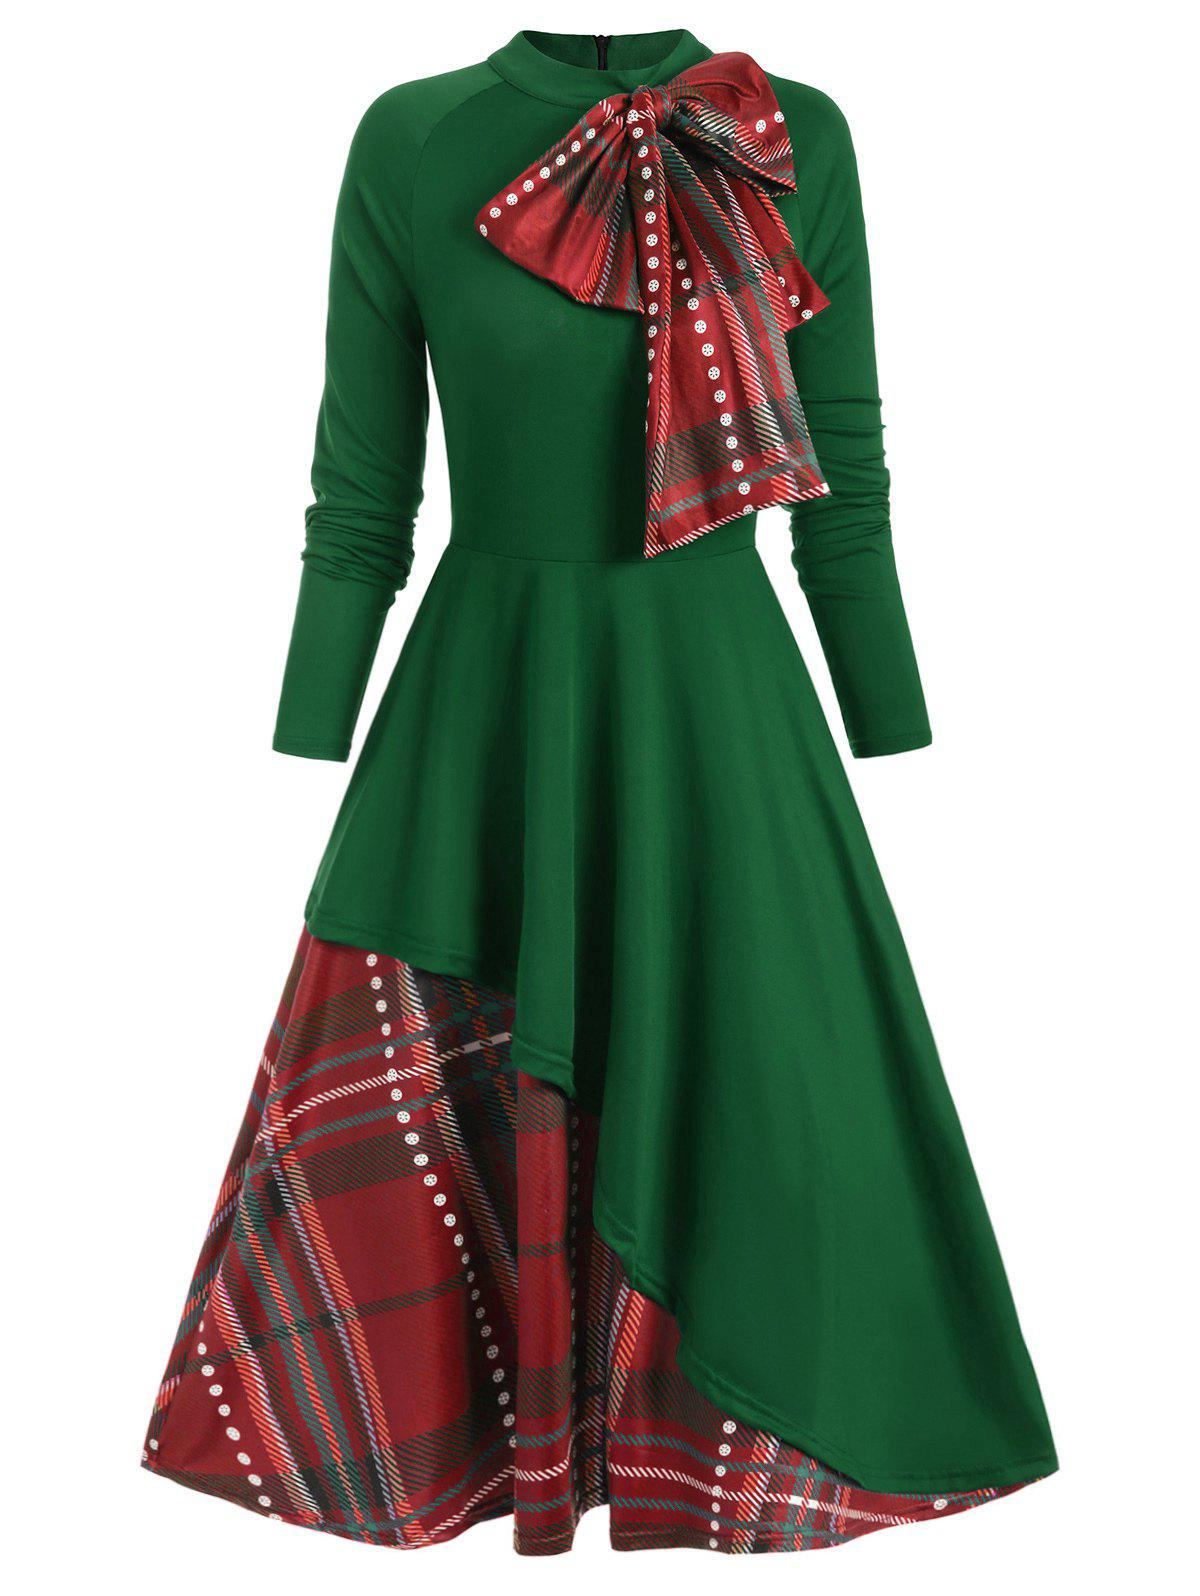 Plaid Contrast Bowknot Long Sleeves Overlay Dress - DEEP GREEN L